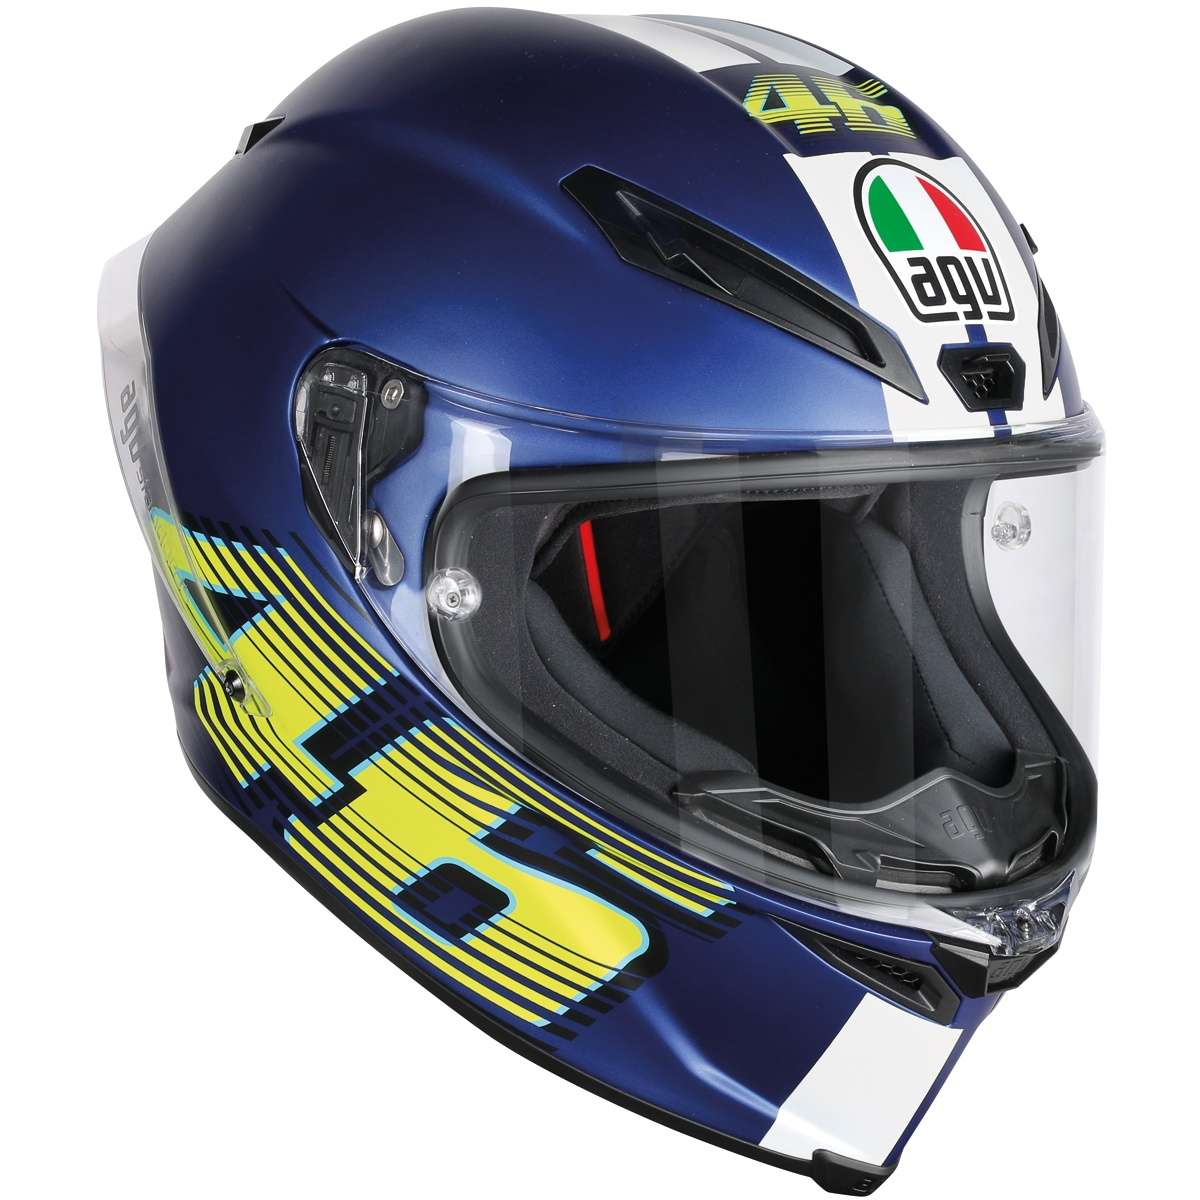 agv corsa r top v46 matte blue full face helmet riders choice come here ride anywhere. Black Bedroom Furniture Sets. Home Design Ideas